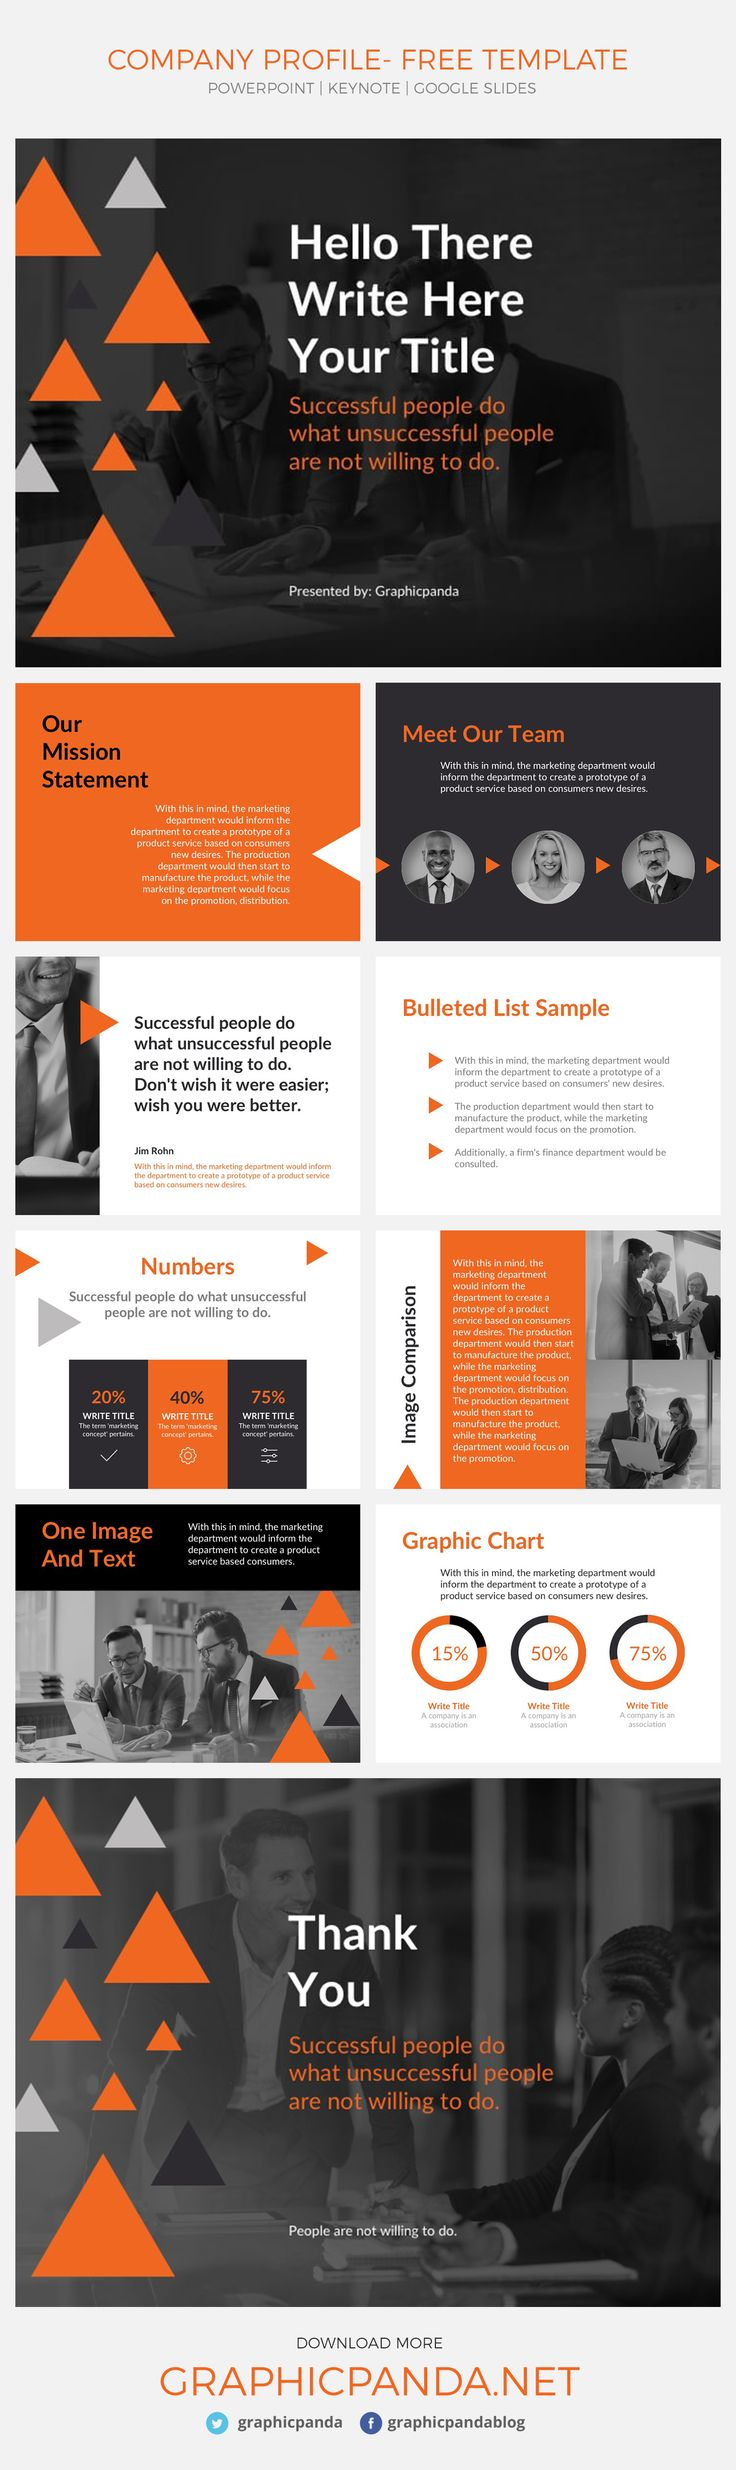 Best FREE POWERPOINT TEMPLATES FREE KEYNOTES THEMES FREE GOOGLE - Awesome keynote template free download concept